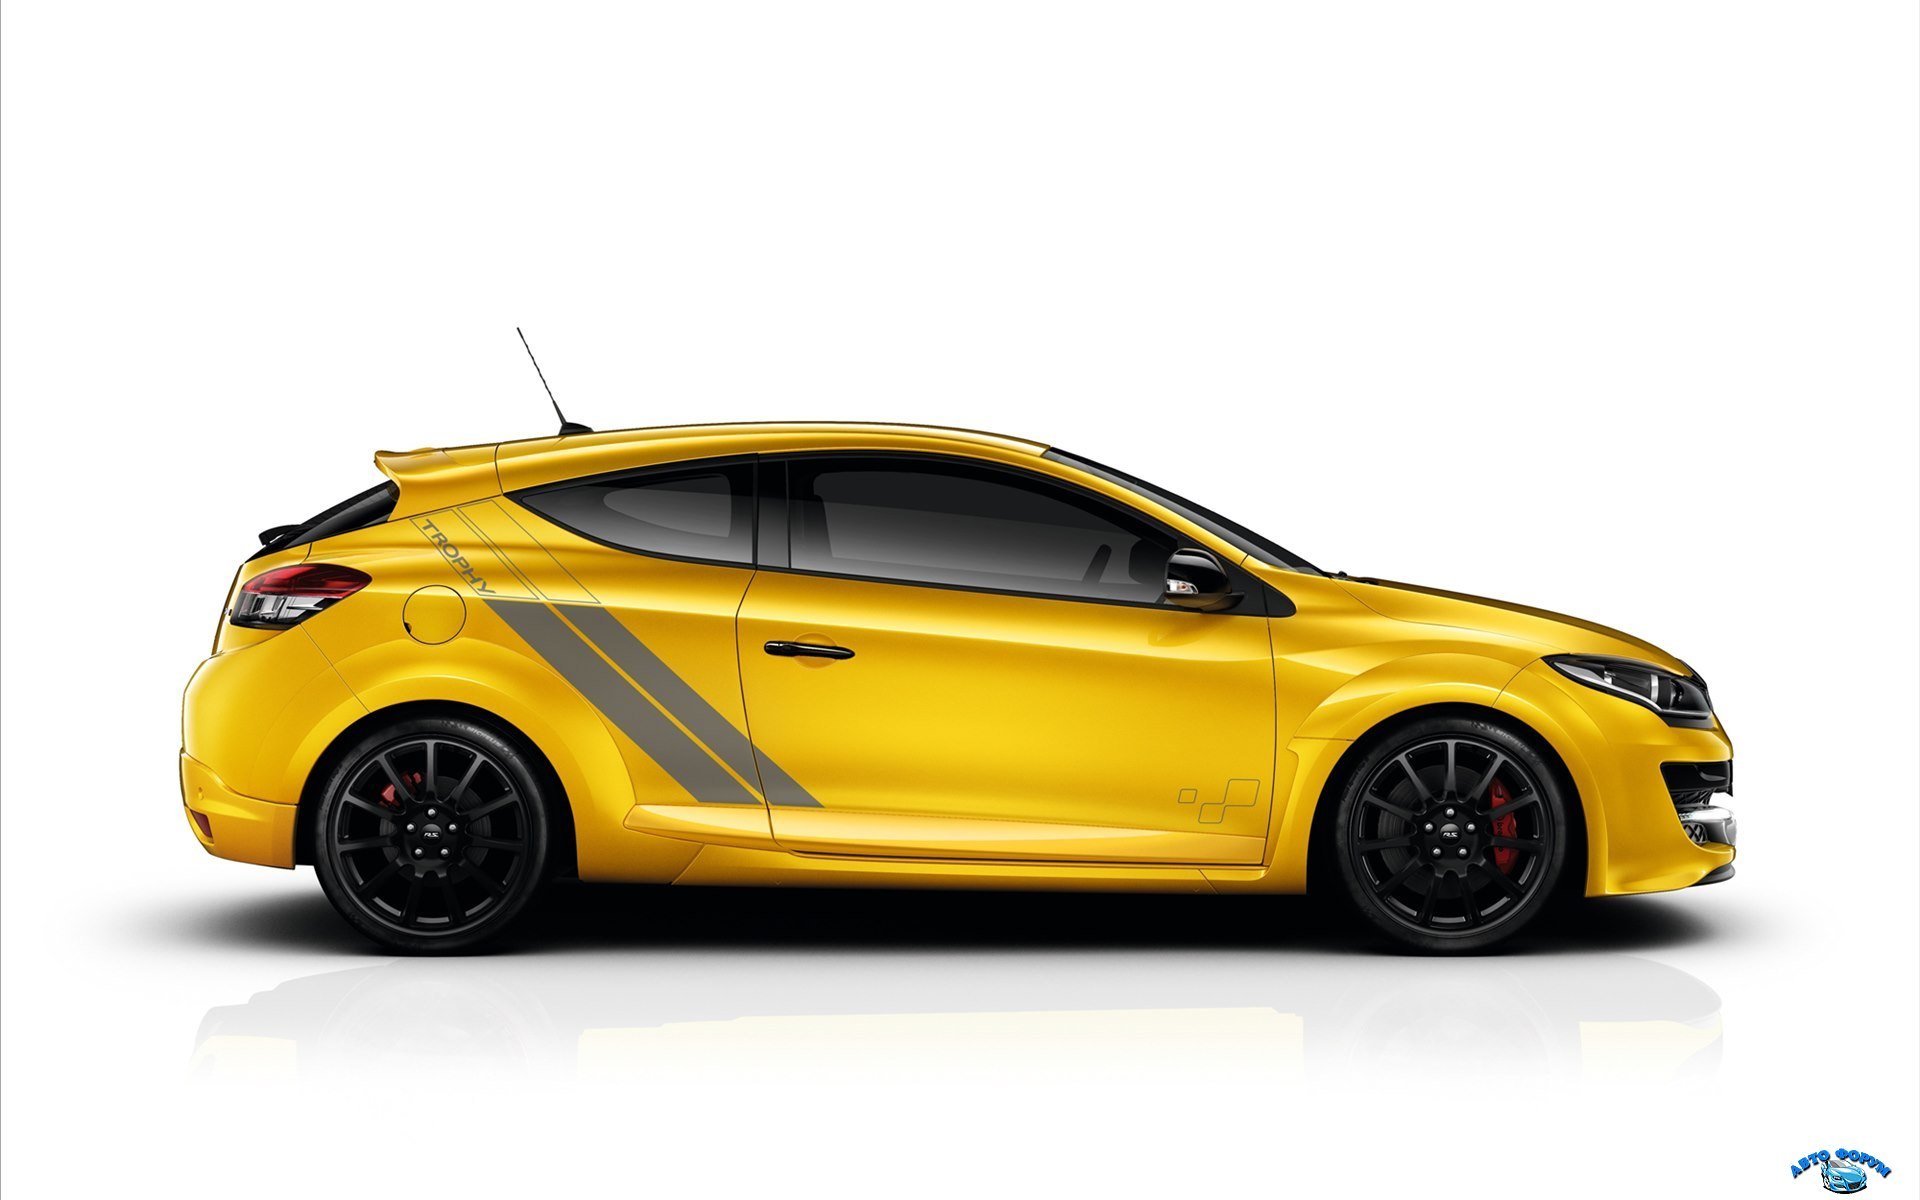 Renault-Megane-RS-275-Trophy-2014-widescreen-02.jpg